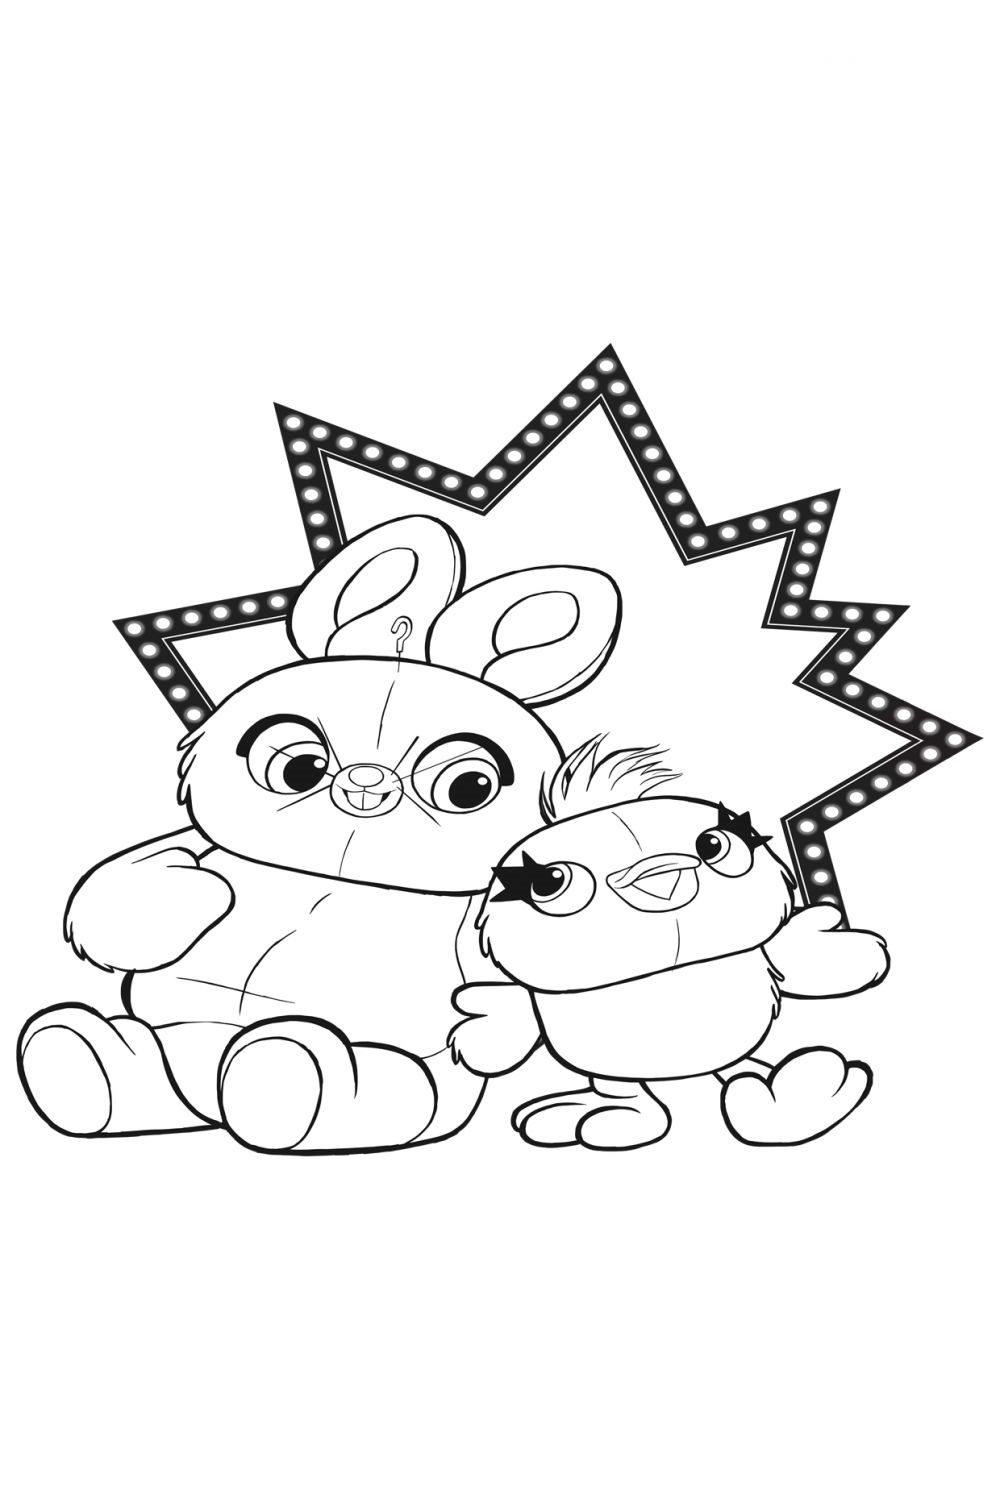 bunny toy story 4 coloring pages buzz lightyear free coloring pages toy story 353690 coloring pages story 4 toy bunny